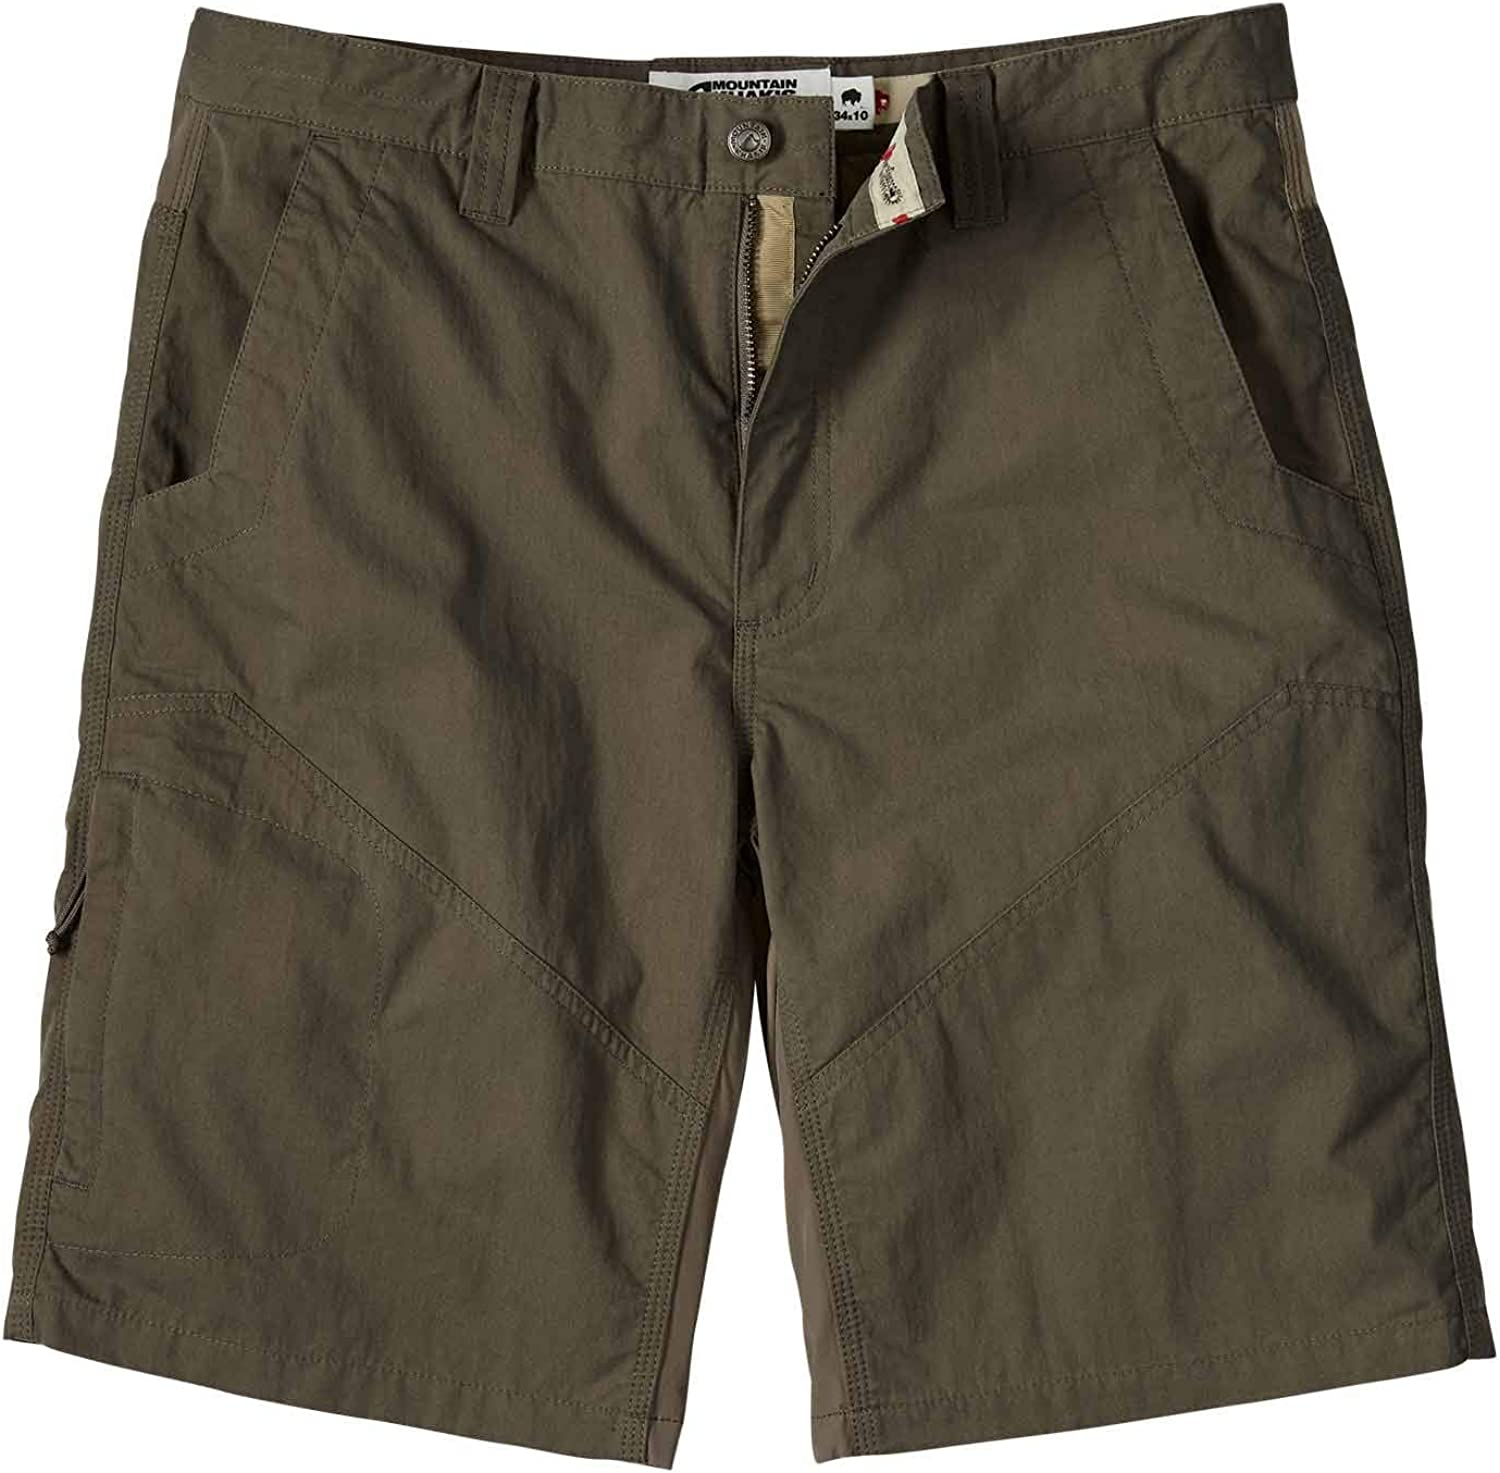 Mountain Khakis Original Trail Shorts Classic Fit